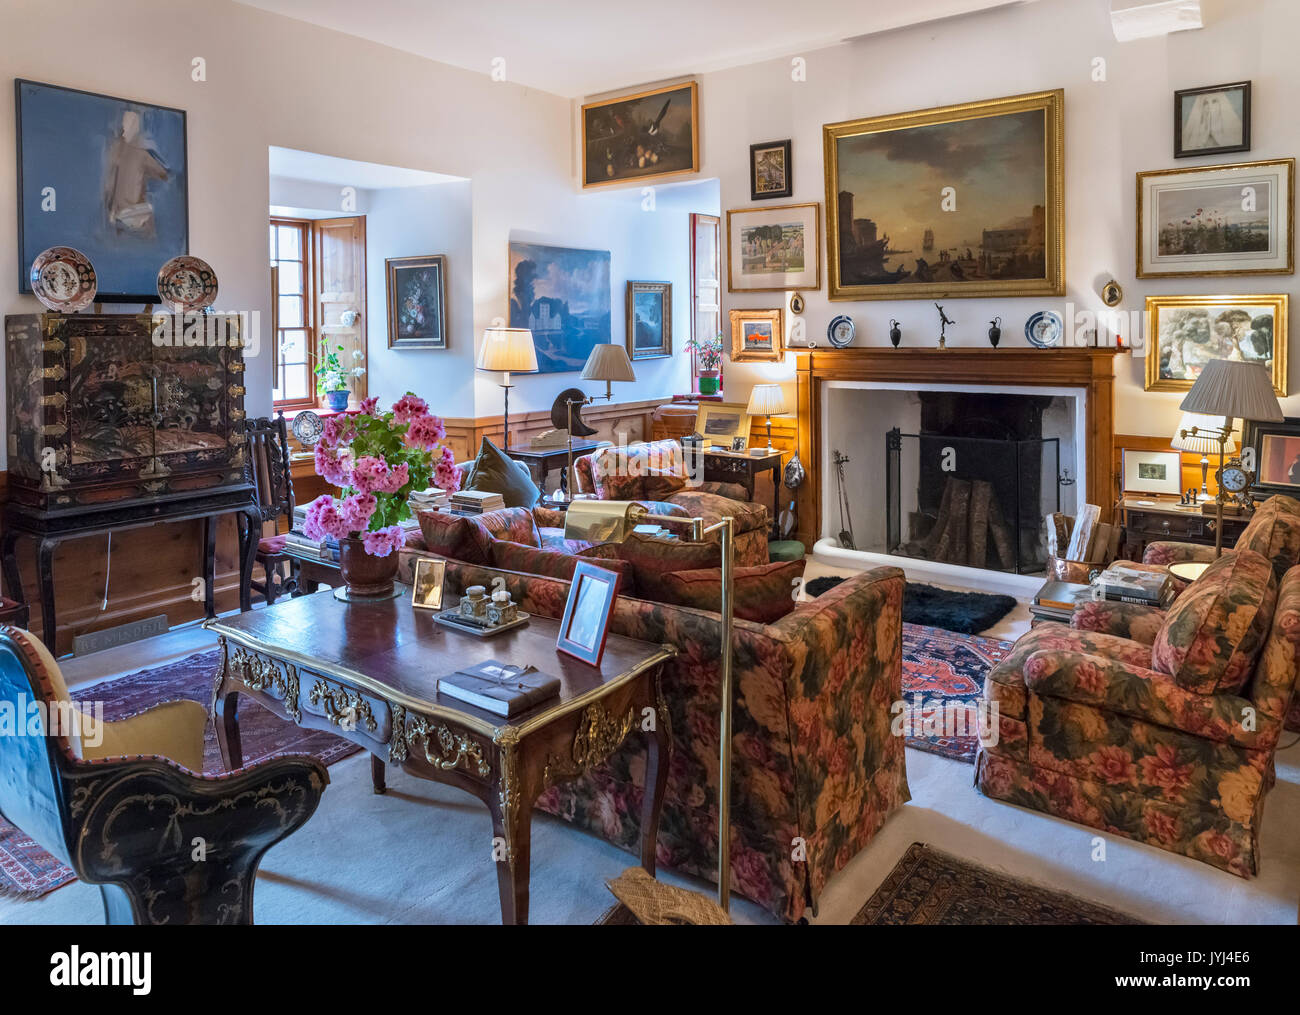 The Tower Room in Cawdor Castle, Cawdor, Nairn, Highland, Scotland, UK - Stock Image